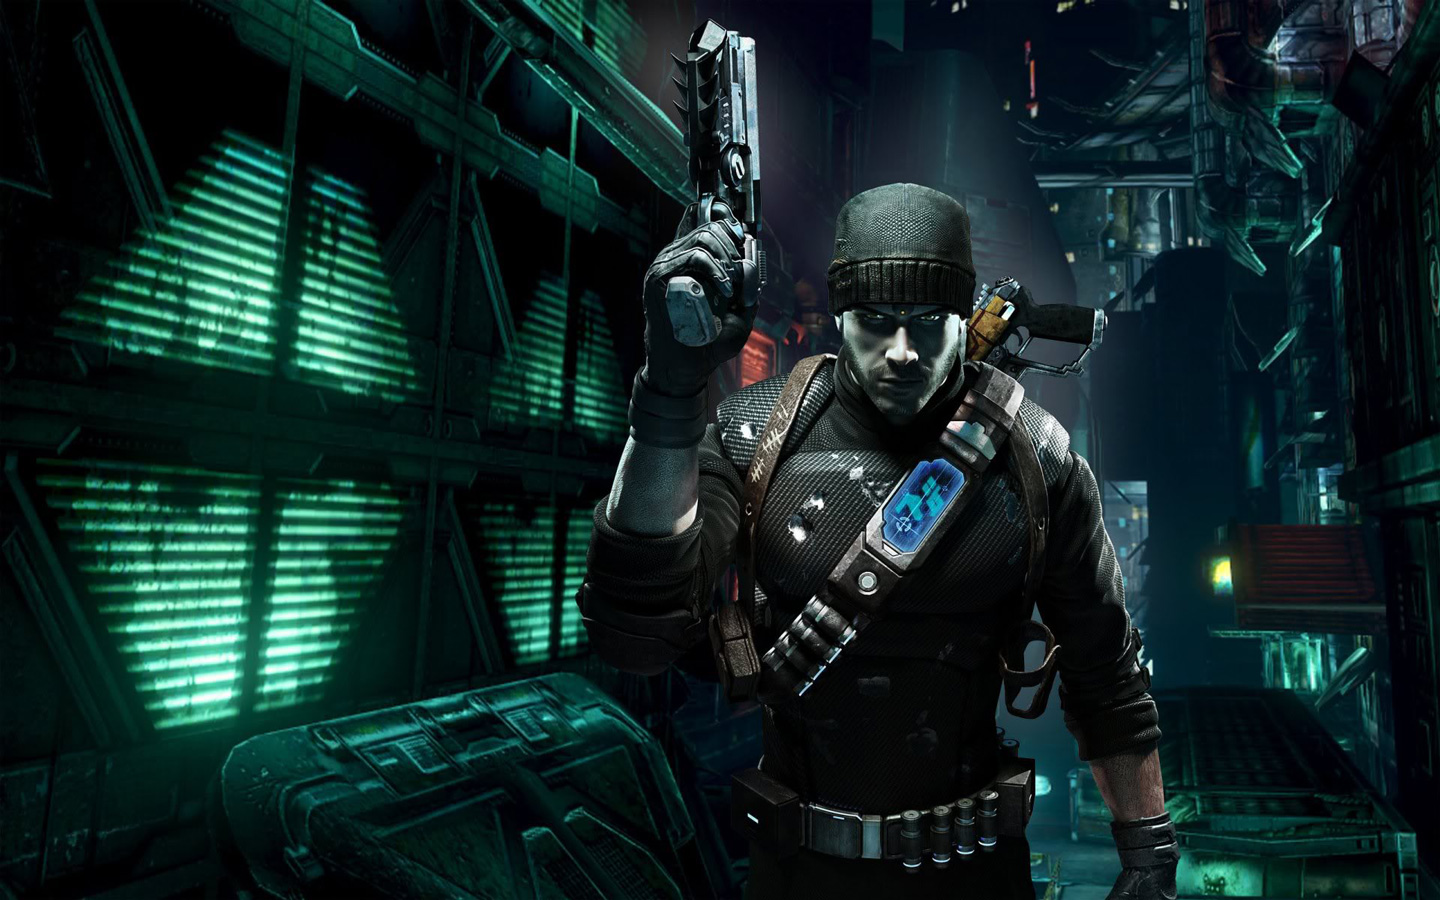 Free Prey 2 Wallpaper in 1440x900